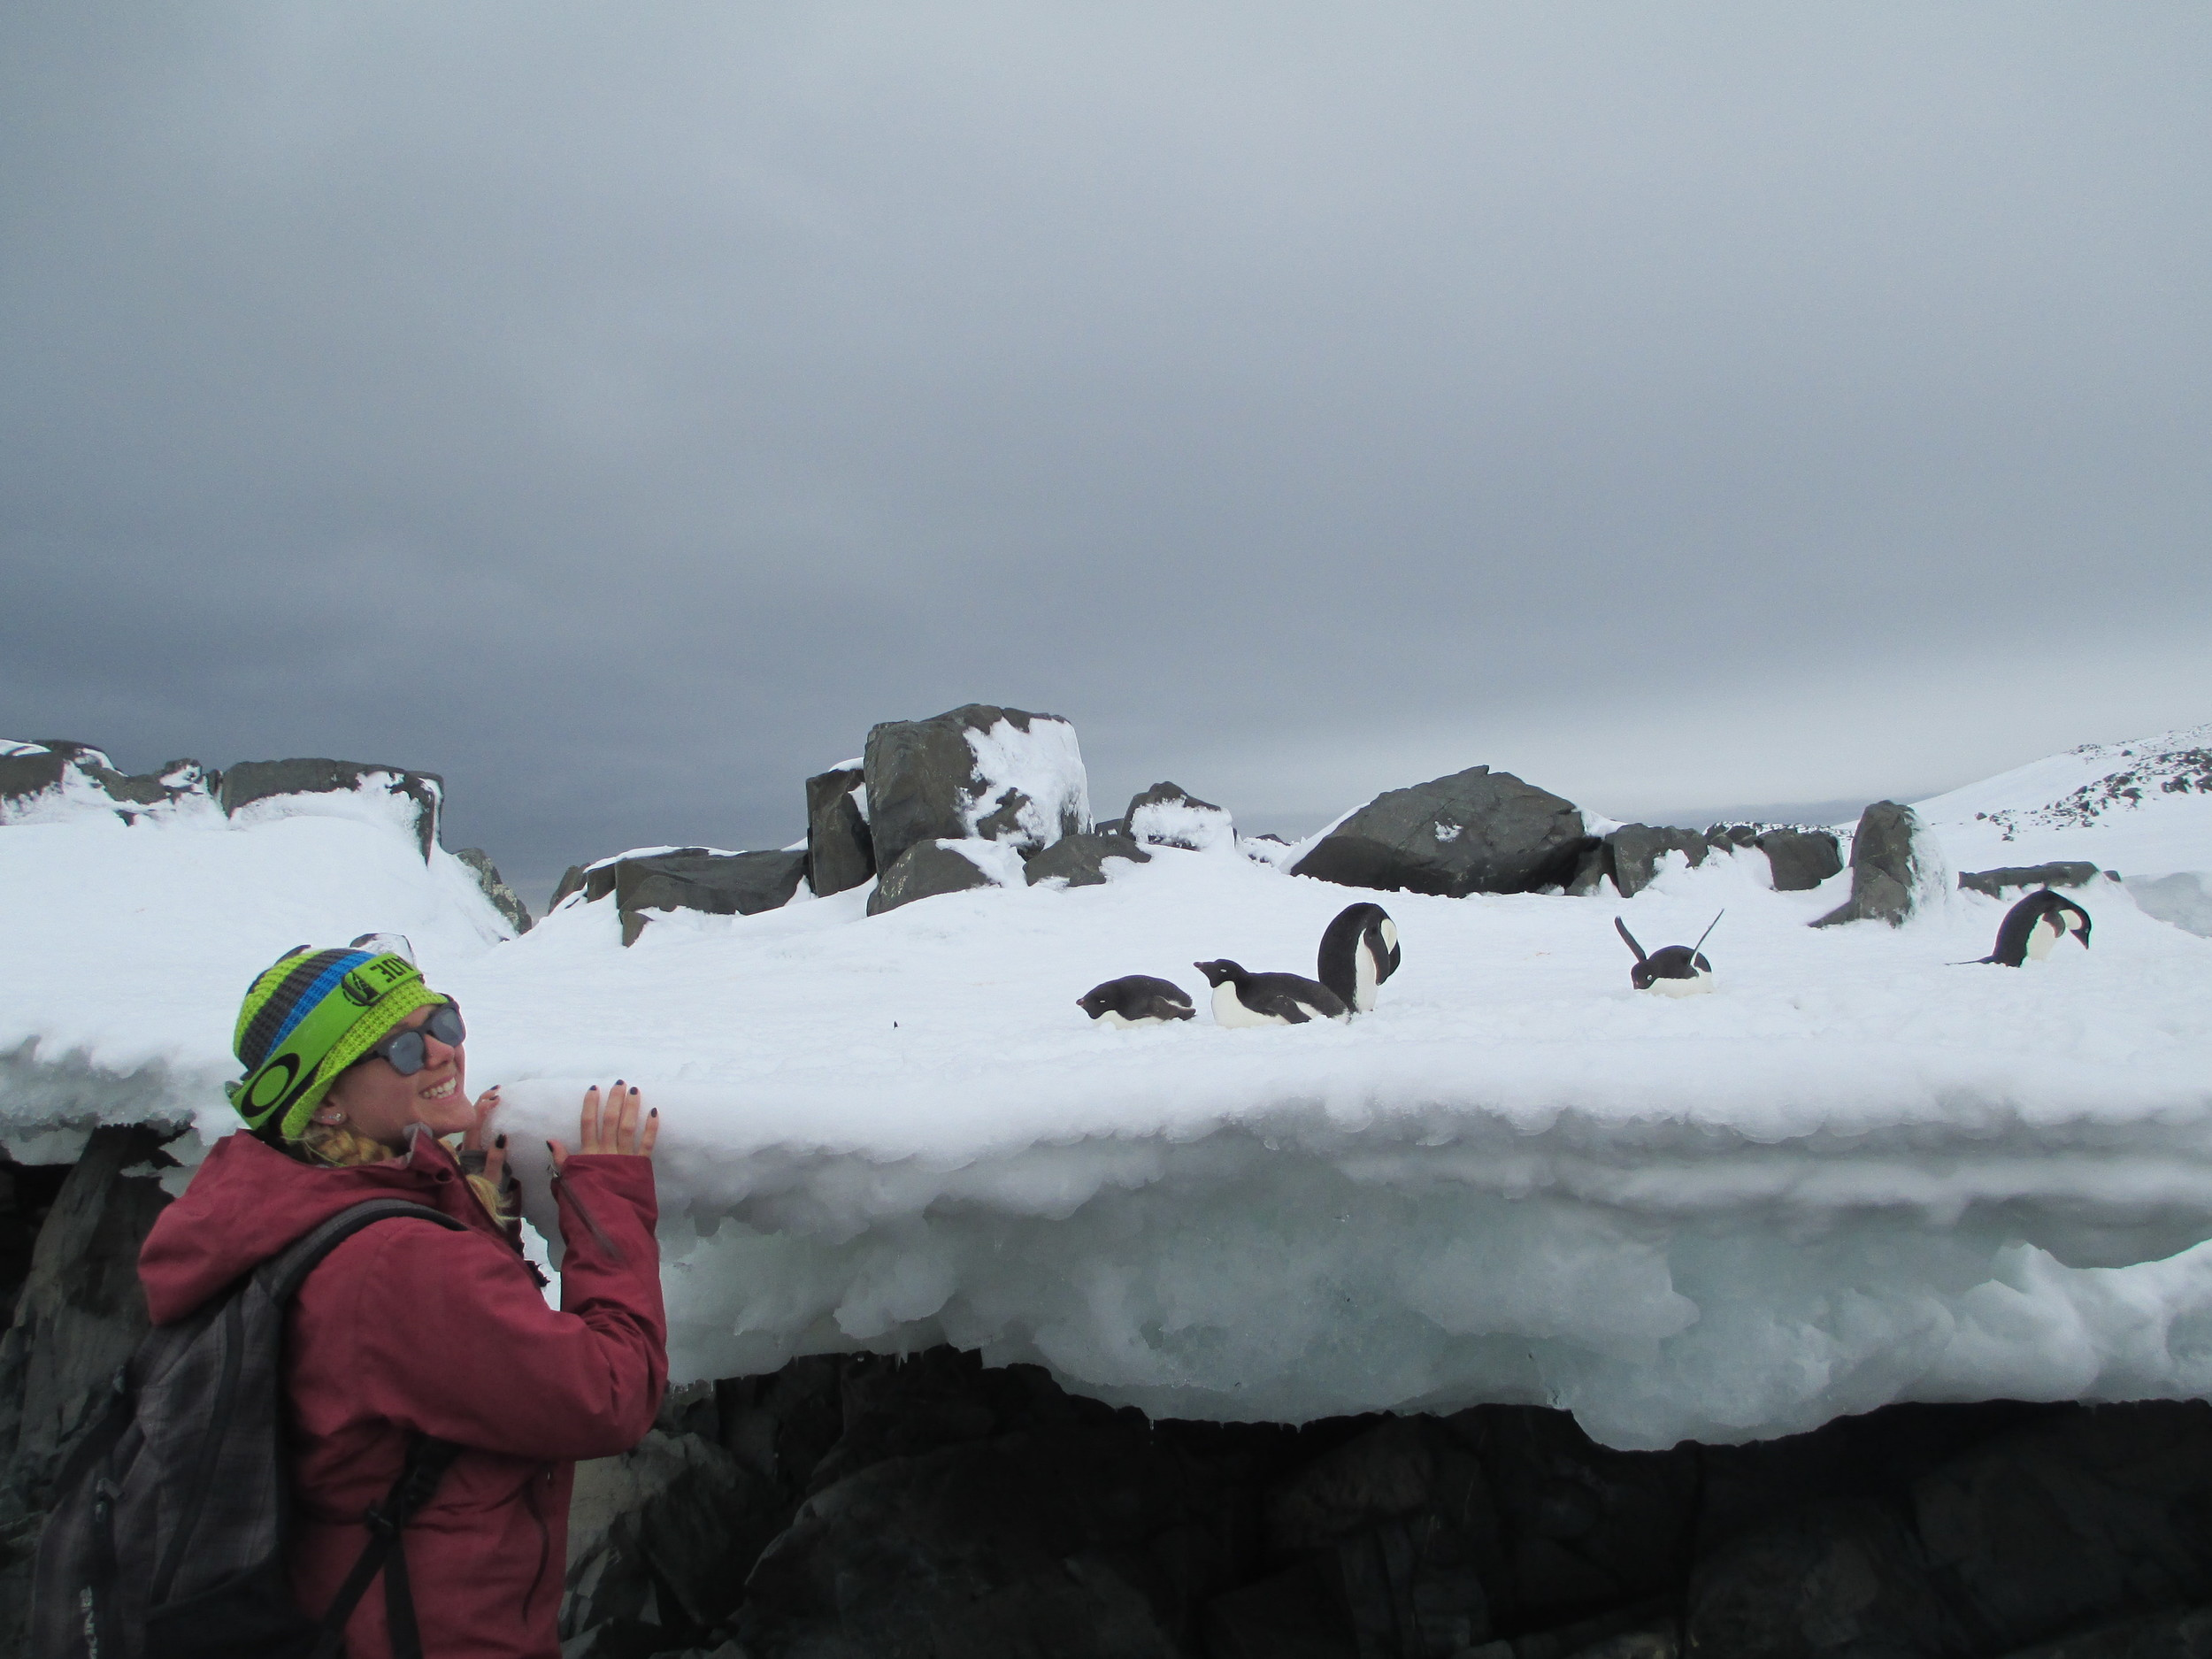 Breezy Grenier mingles with the penguins at Hope Bay in the Antarctic Peninsula in 2013.